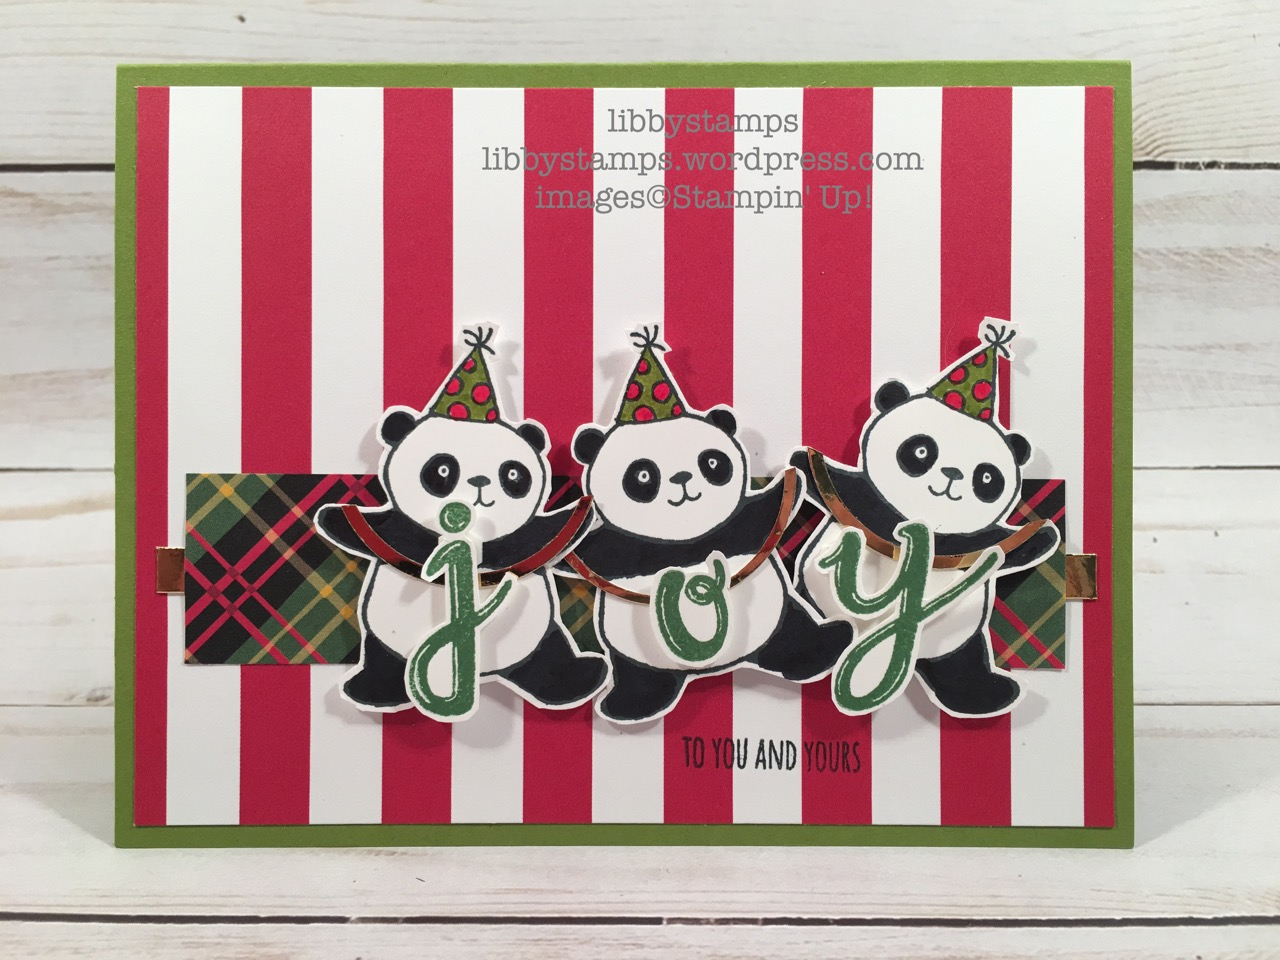 libbystamps, stampin up, Watercolor Christmas Project Kit